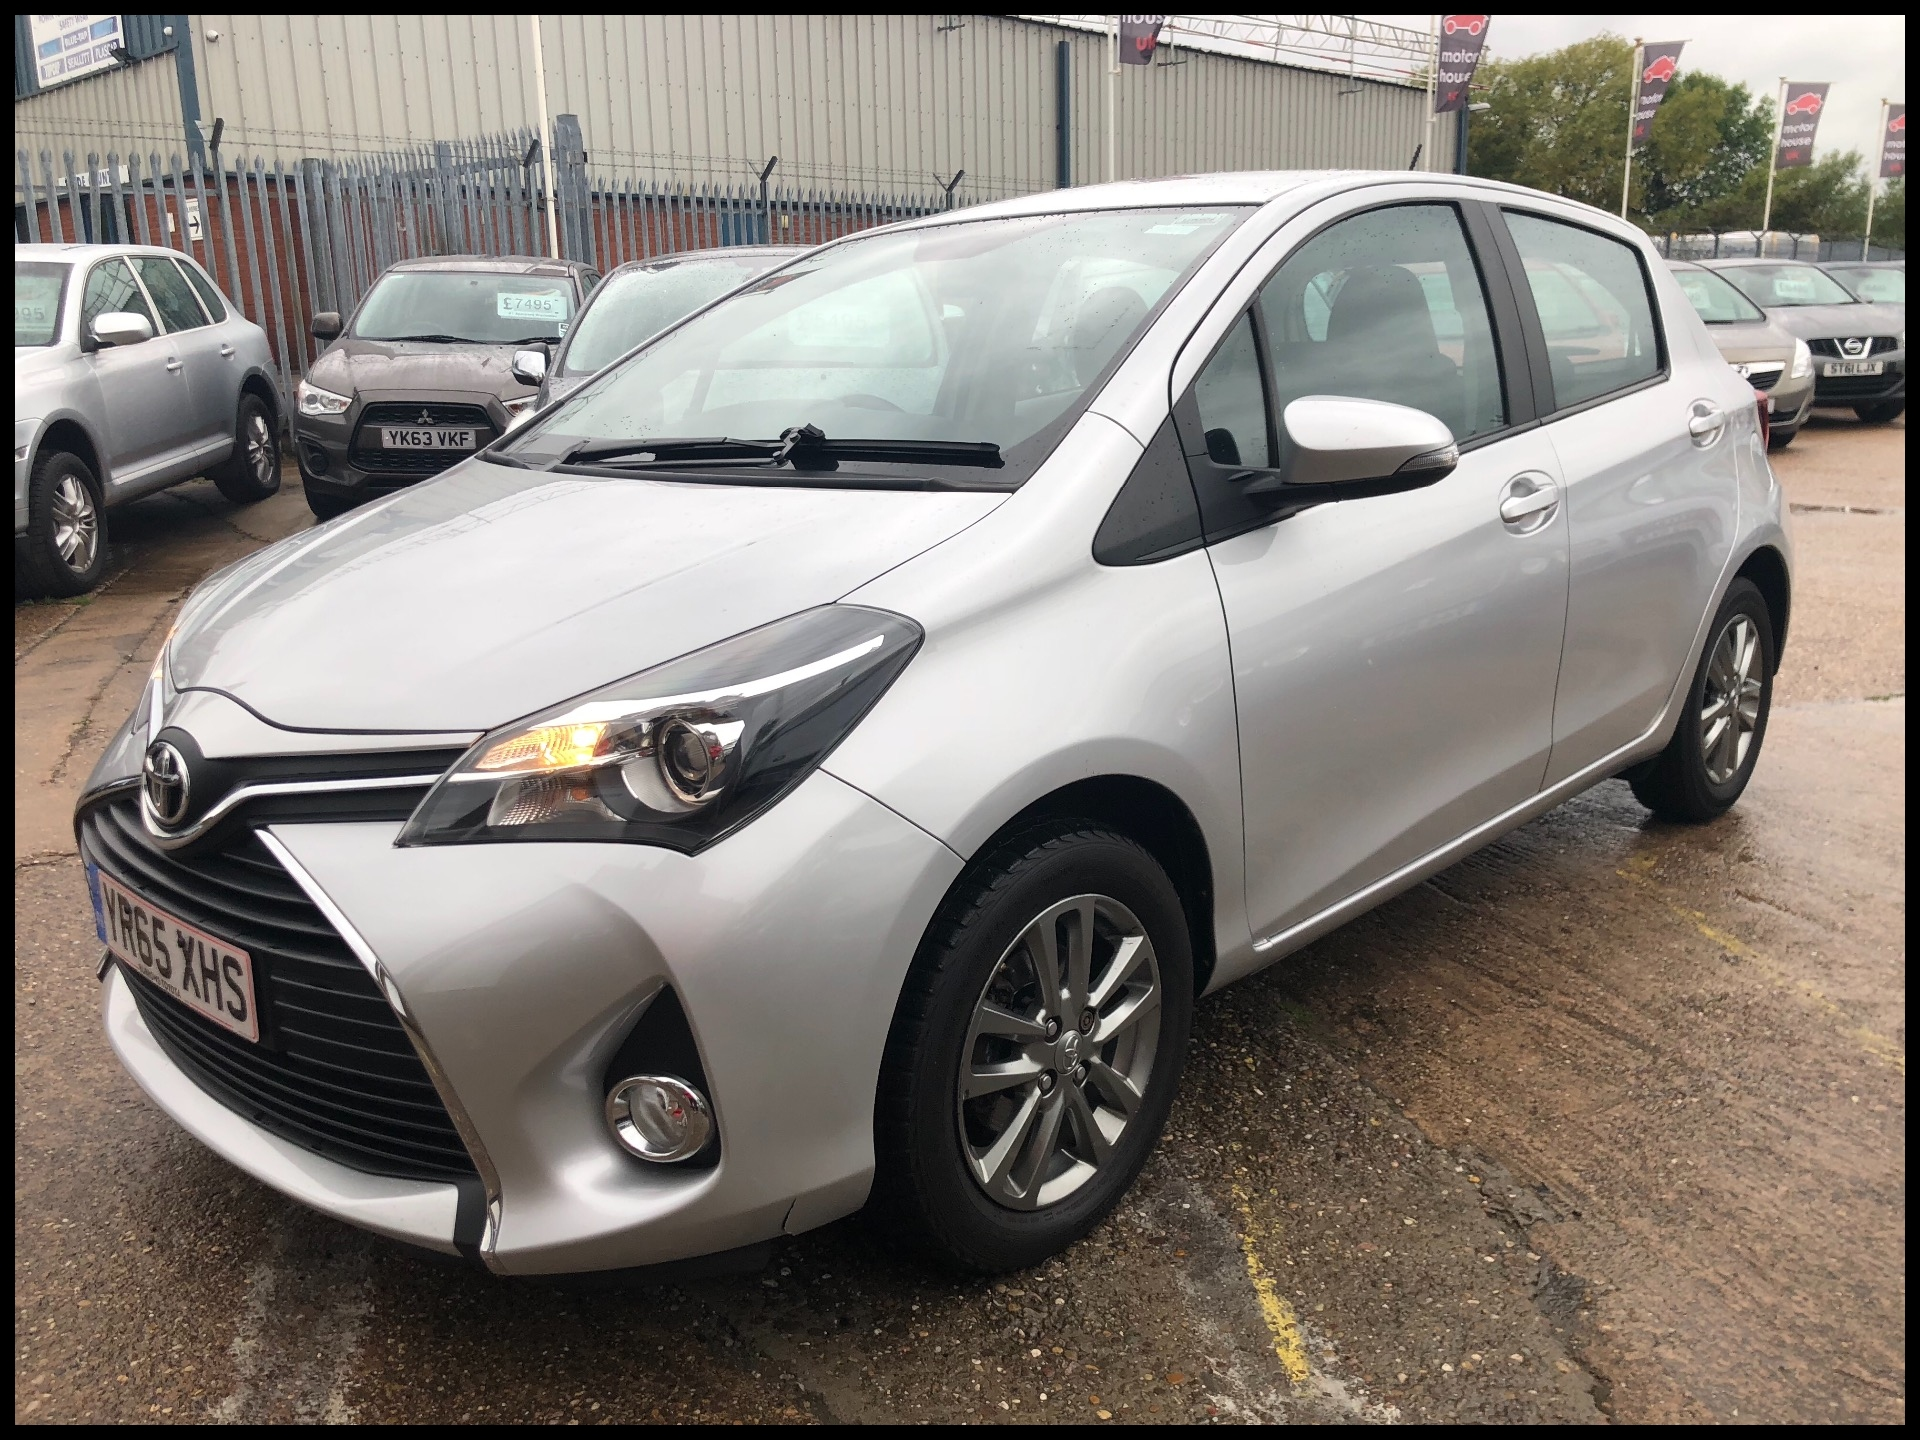 Used Toyota Yaris Cars for Sale in Nottingham Nottinghamshire